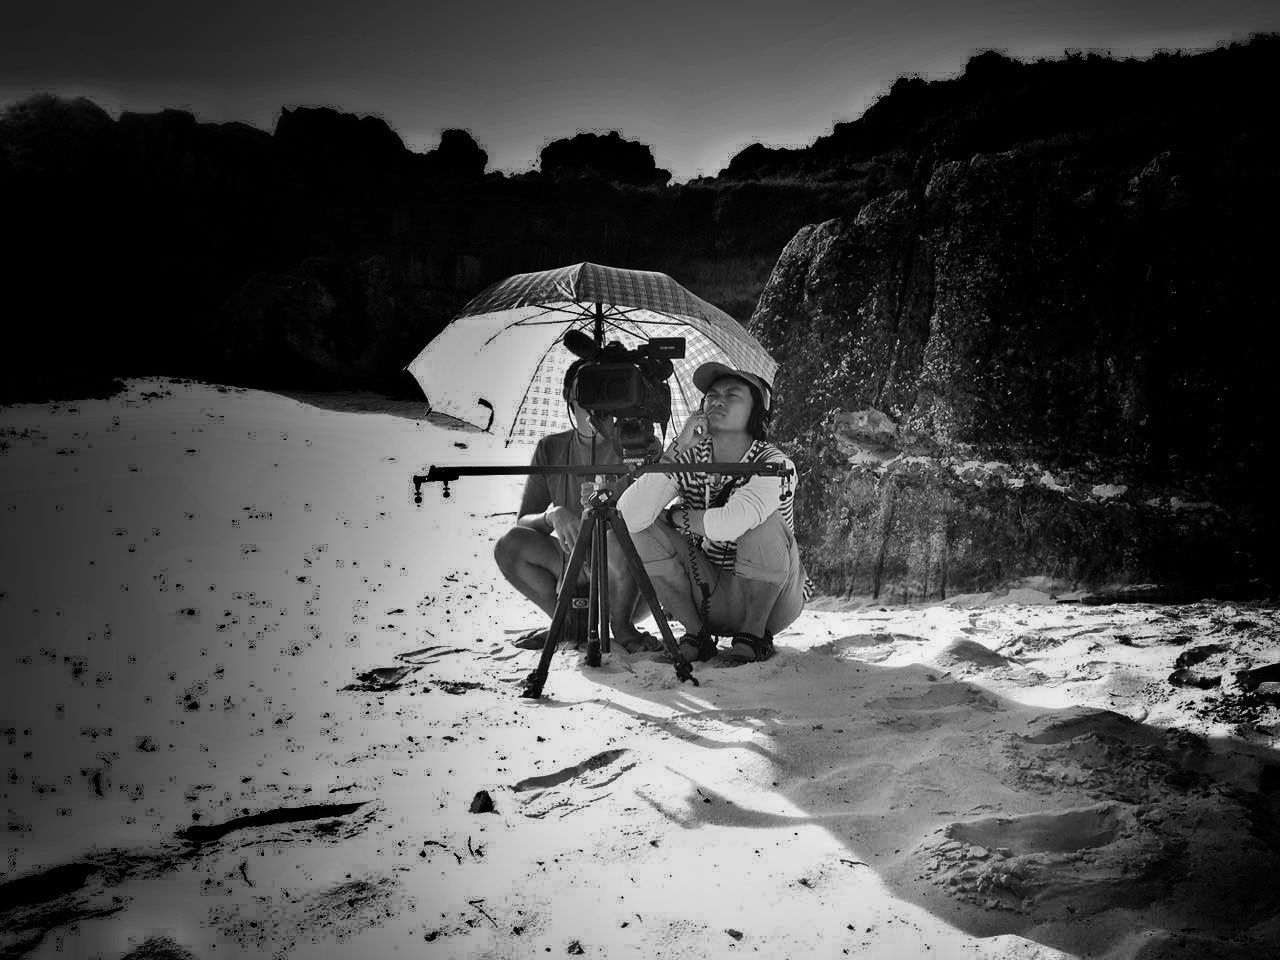 Protect me Hello World That's Me Check This Out Taking Photos Hanging Out Enjoying Life Humaninterest Bw Bwphotography Blackandwhite Photography Fine Art Photography Monochrome Photography Journey Sun Sunshine Tired! Working Hard